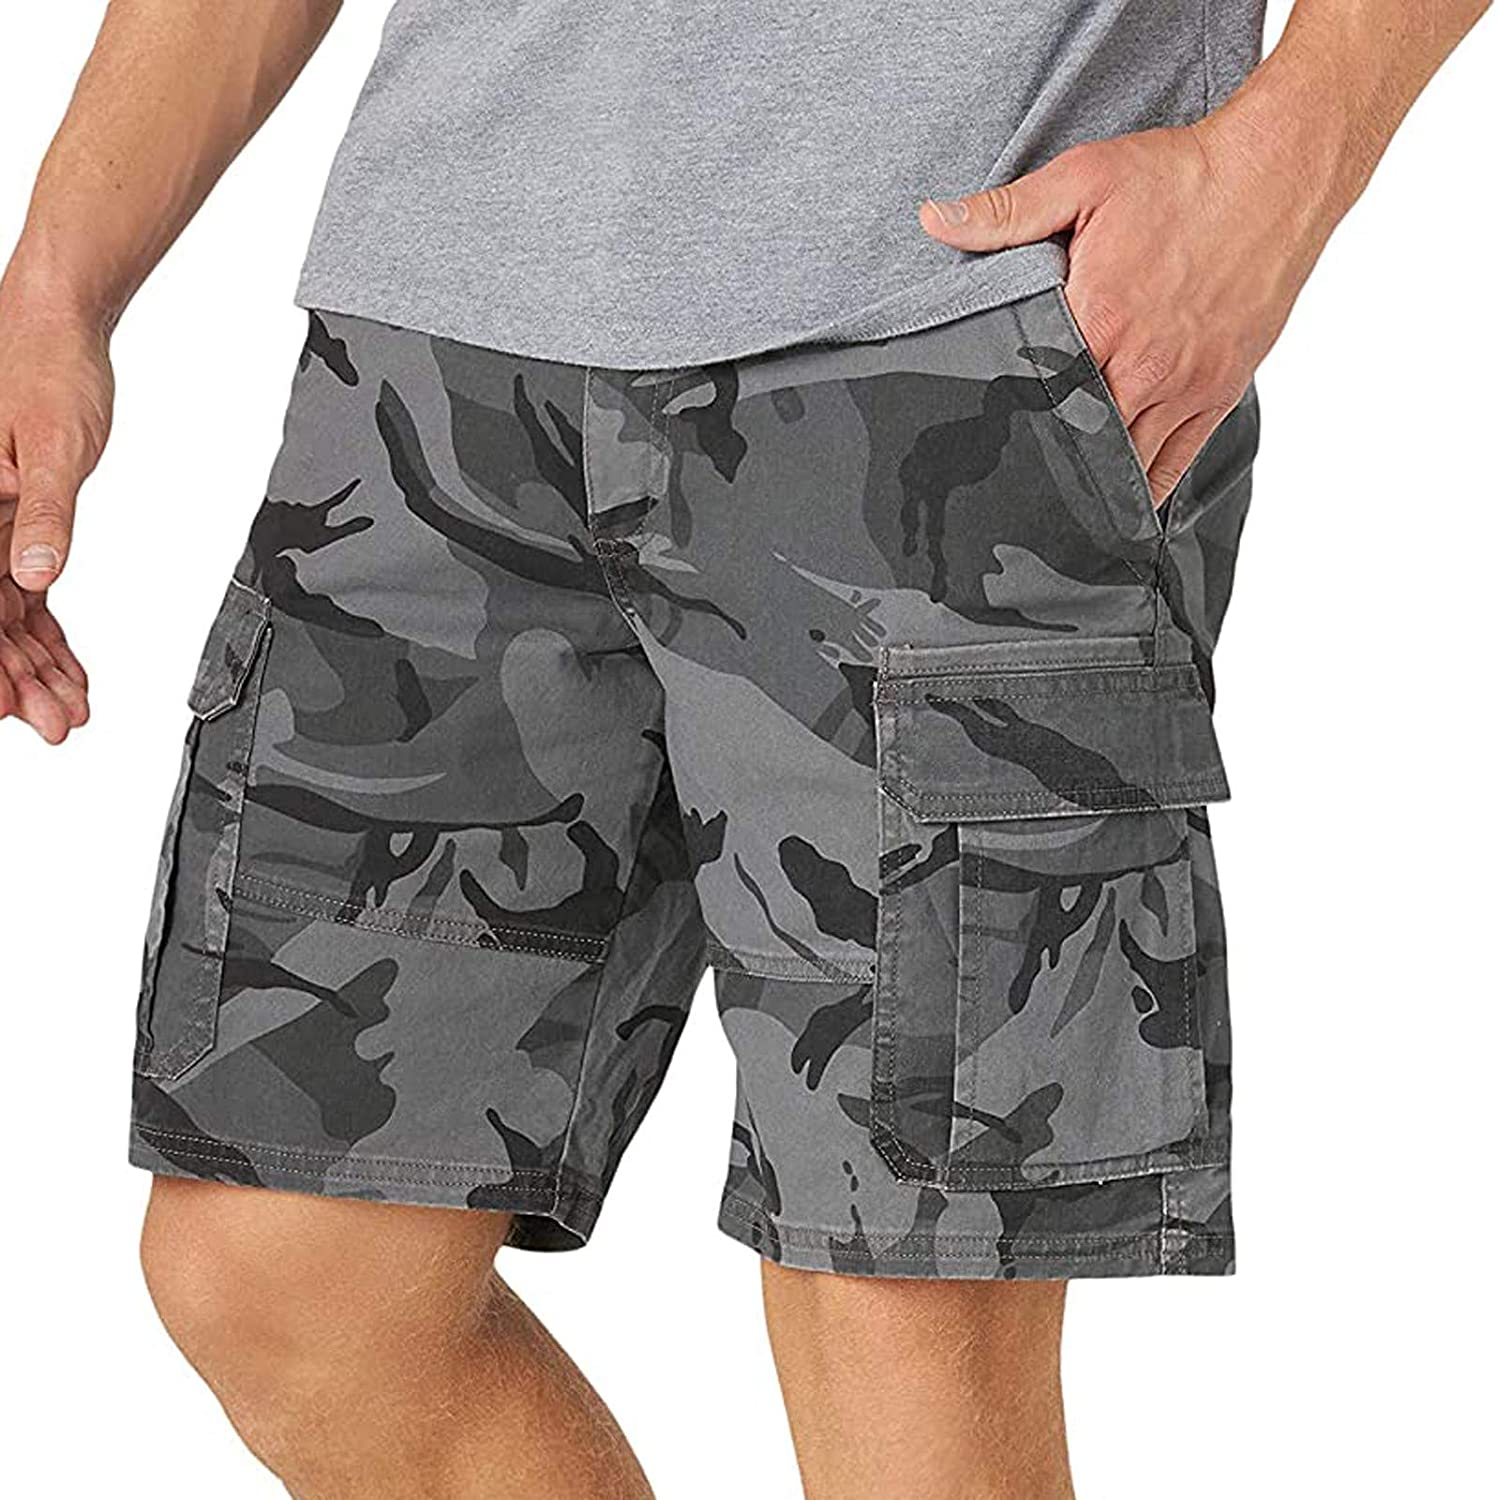 Men's Hiking Shorts with Pockets Summer Quick Dry Lightweight Cargo Fishing Casual Work Shorts